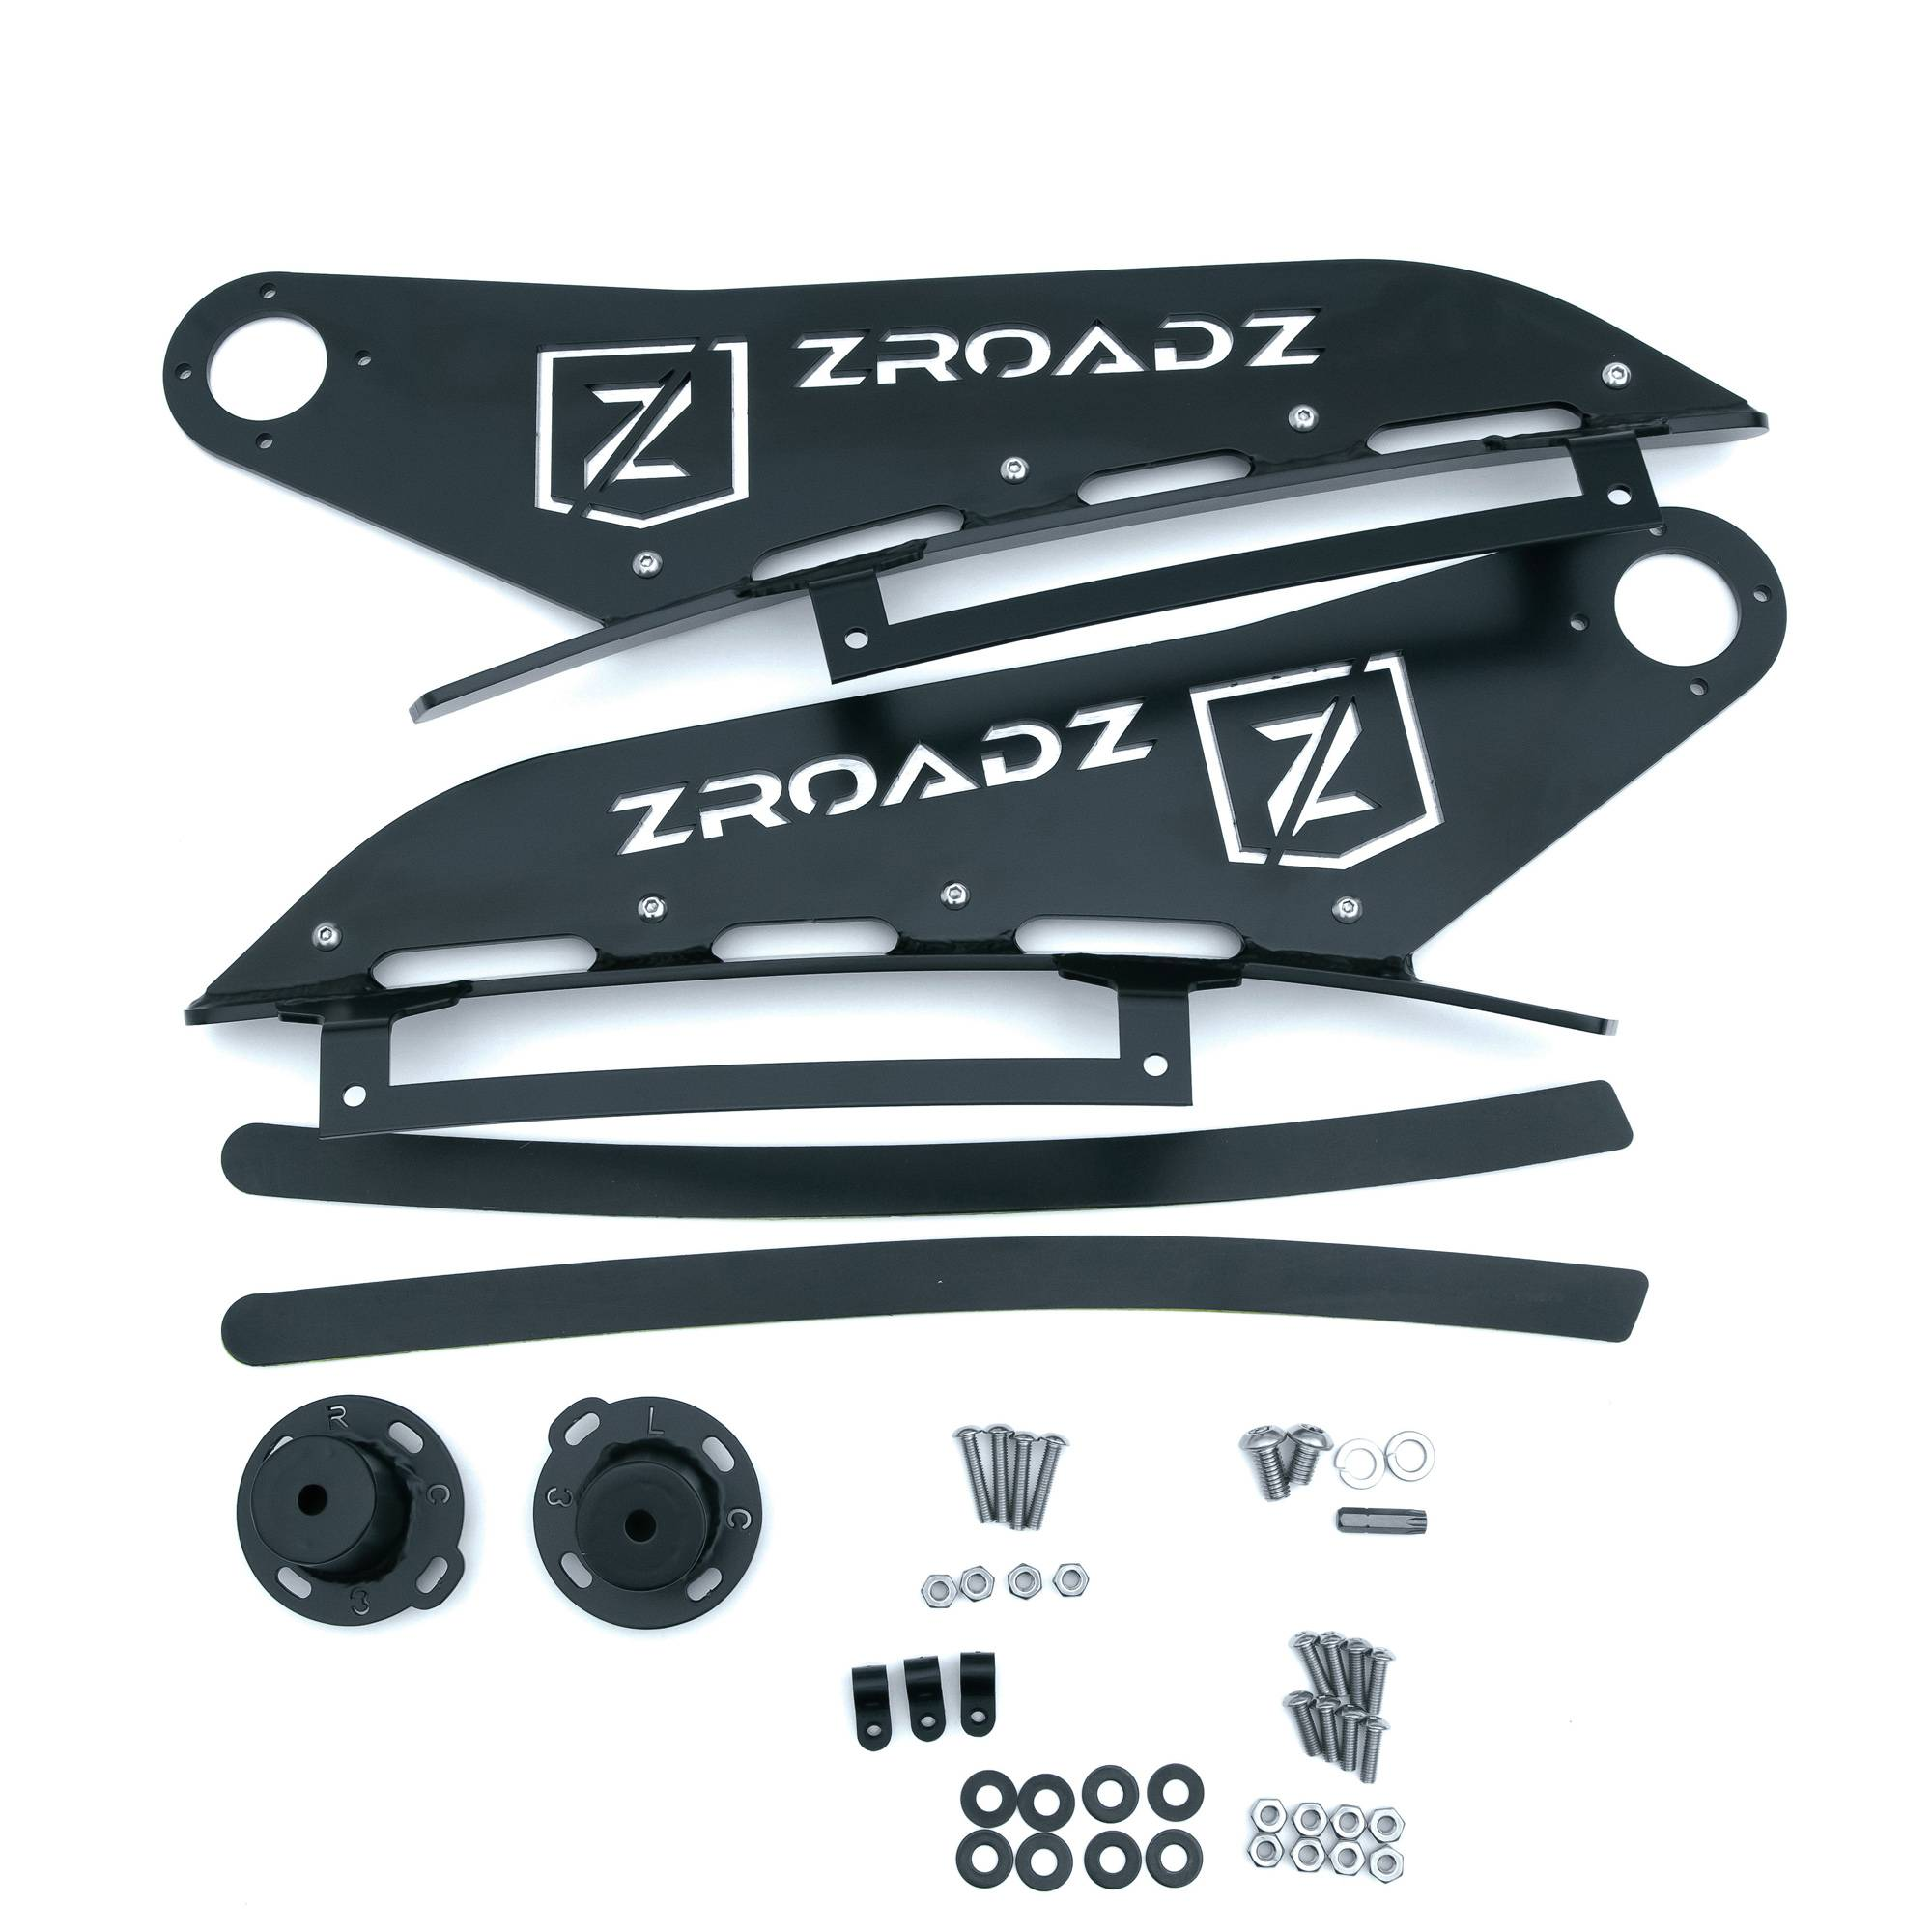 ZROADZ OFF ROAD PRODUCTS - 2007-2013 Silverado, Sierra 1500 Front Roof LED Bracket to mount (1) 50 Inch Curved LED Light Bar - PN #Z332051